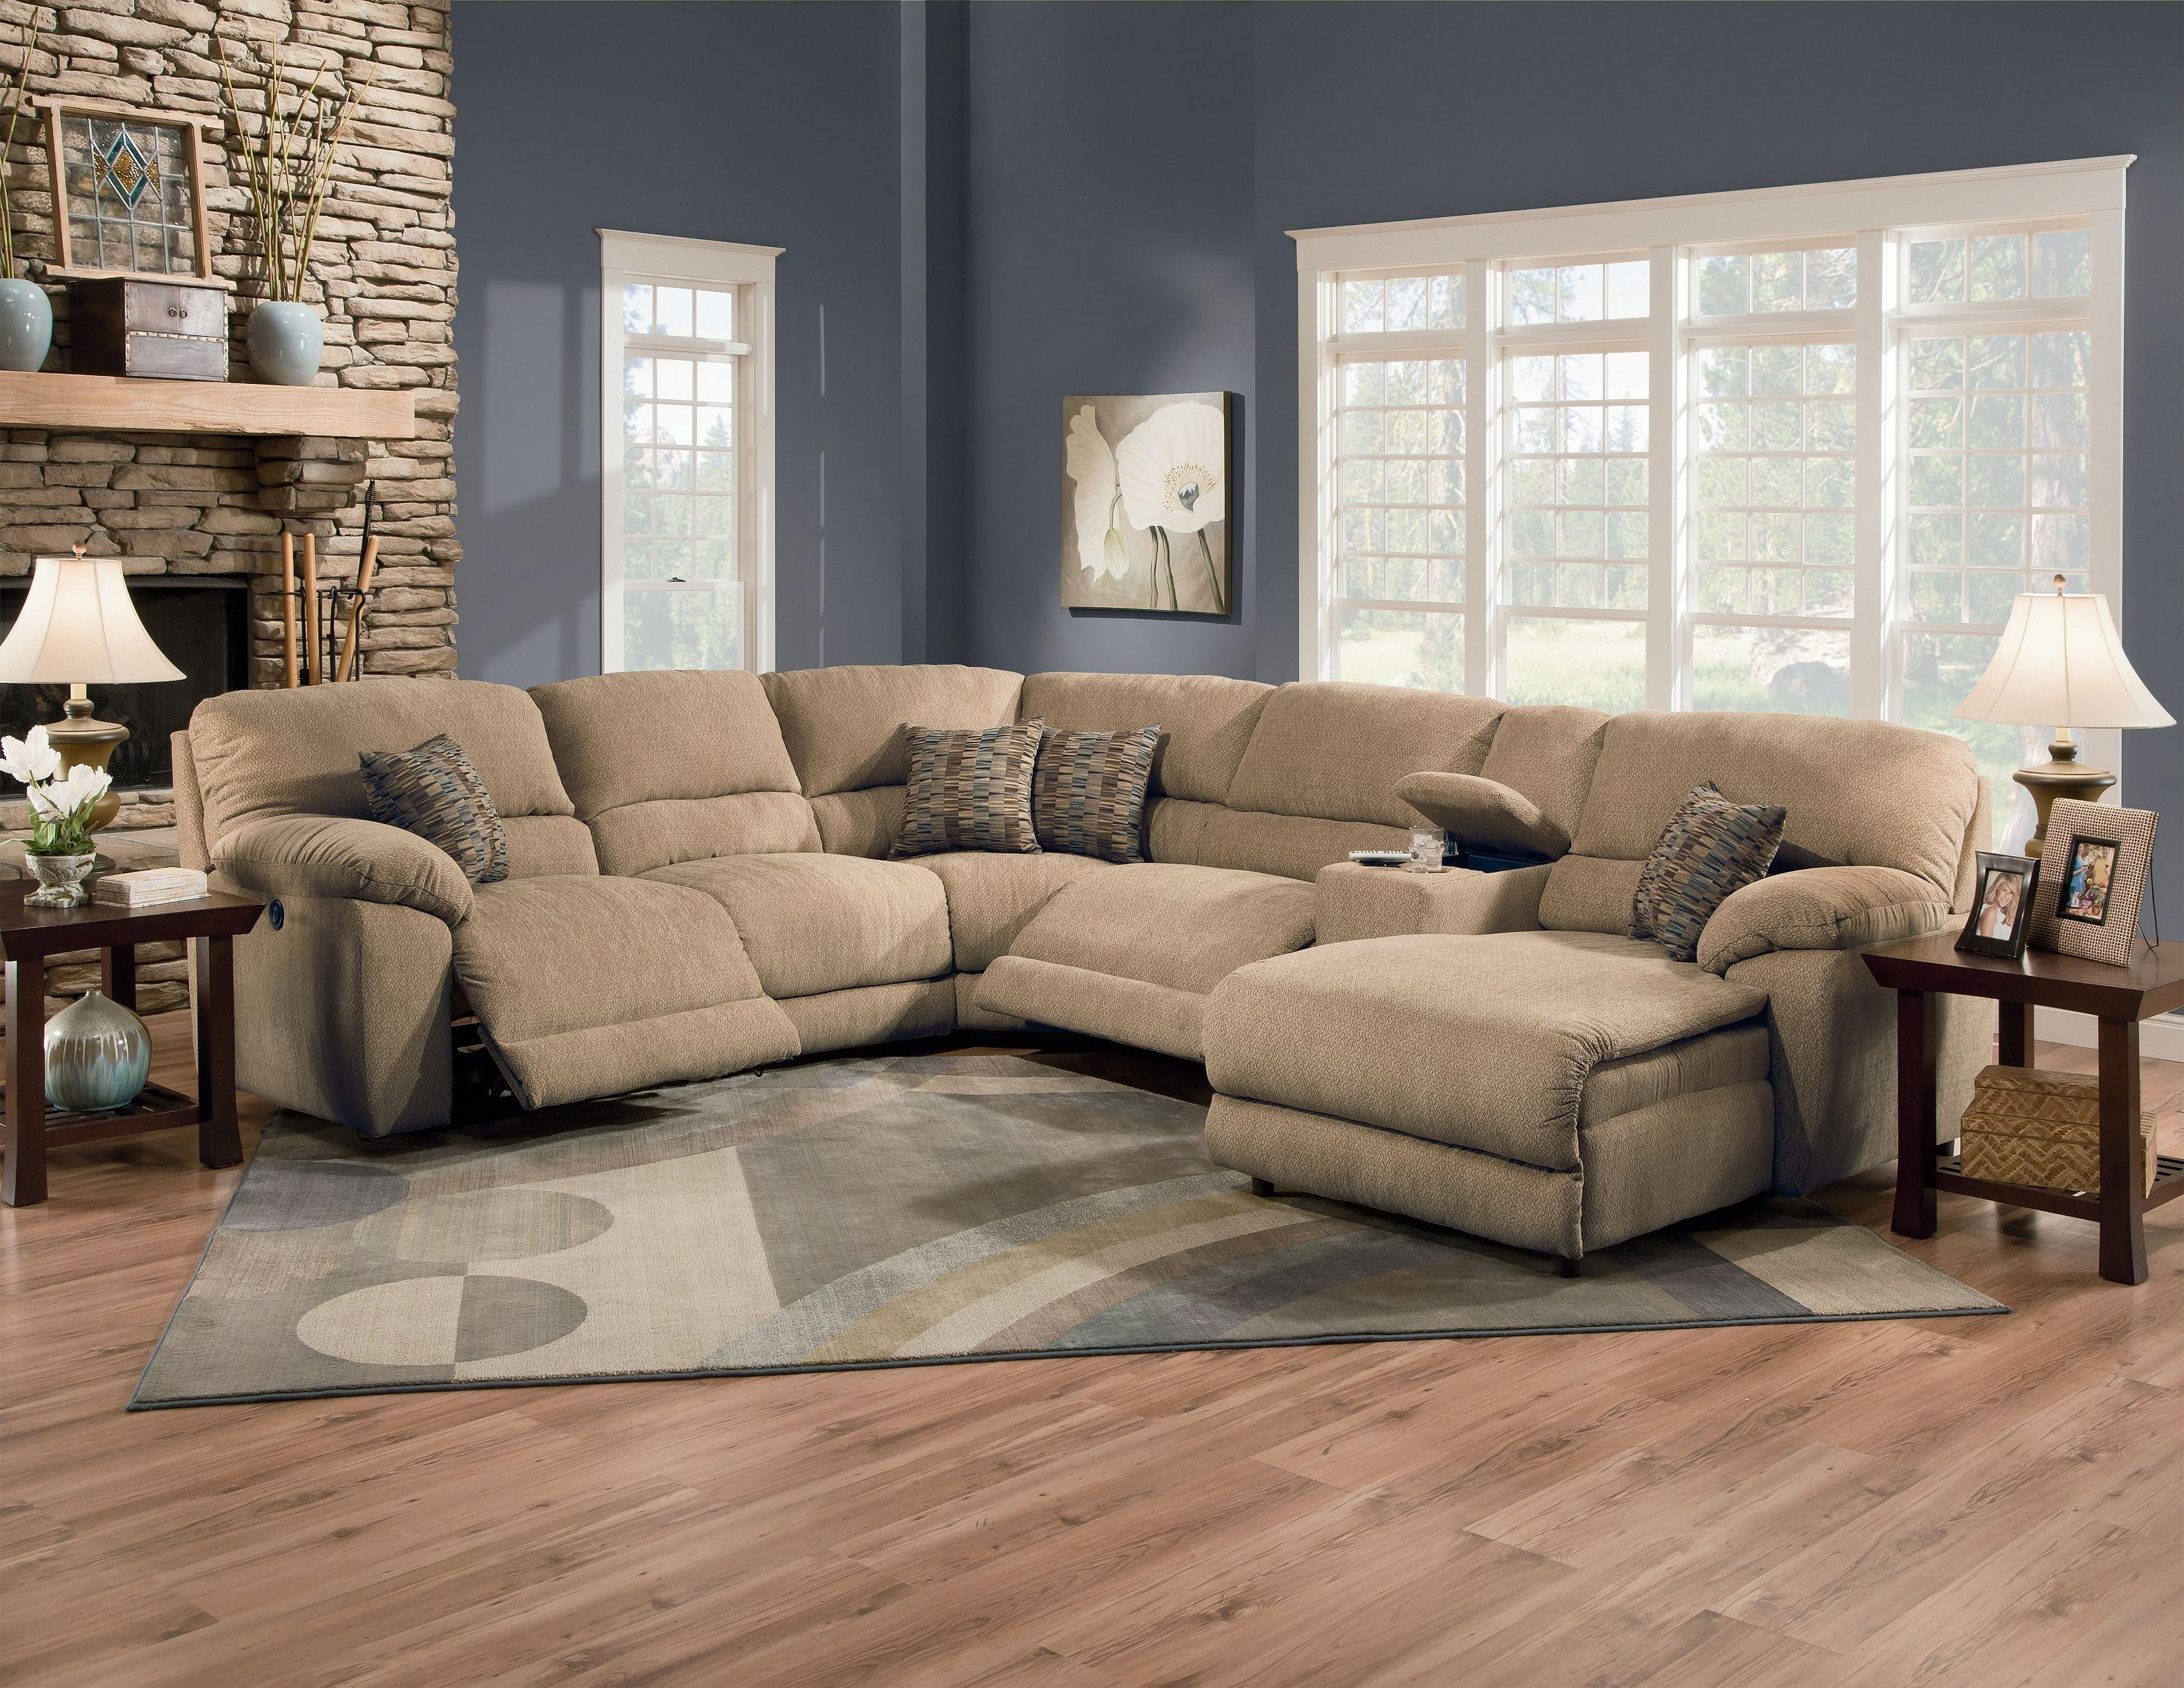 Lane Furniture: Rivers Collection Featuring Power Reclining Intended For Well Known Virginia Sectional Sofas (View 7 of 20)